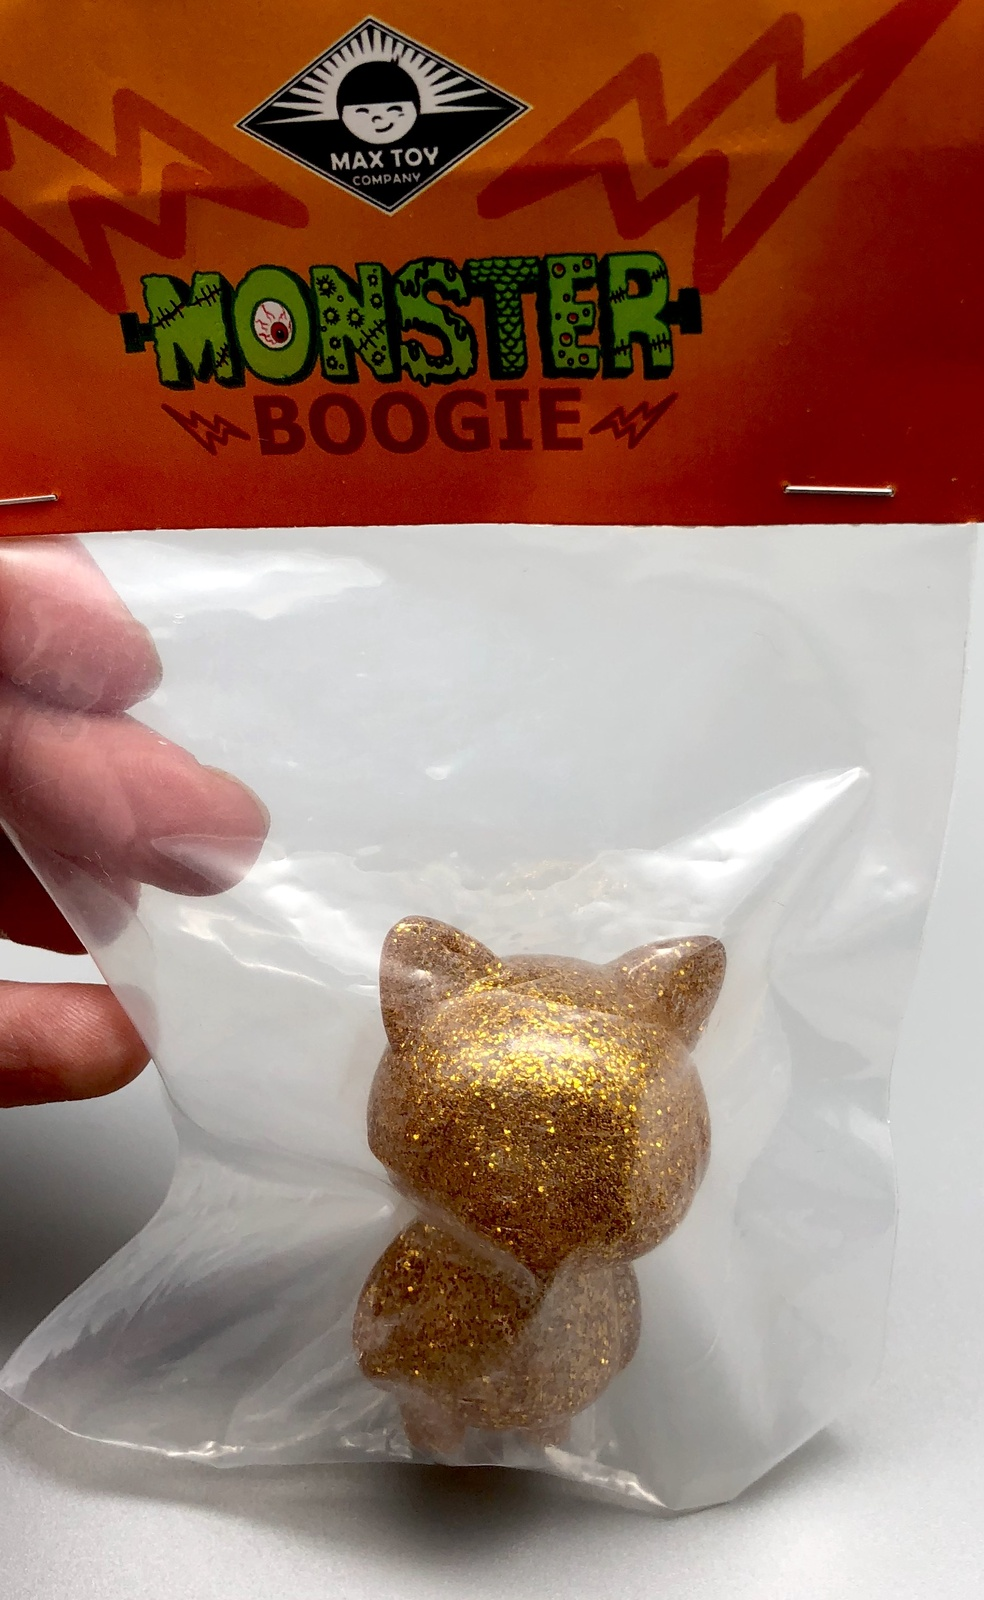 Max Toy Gold Glitter Mini Cat Girl - Mint in Bag